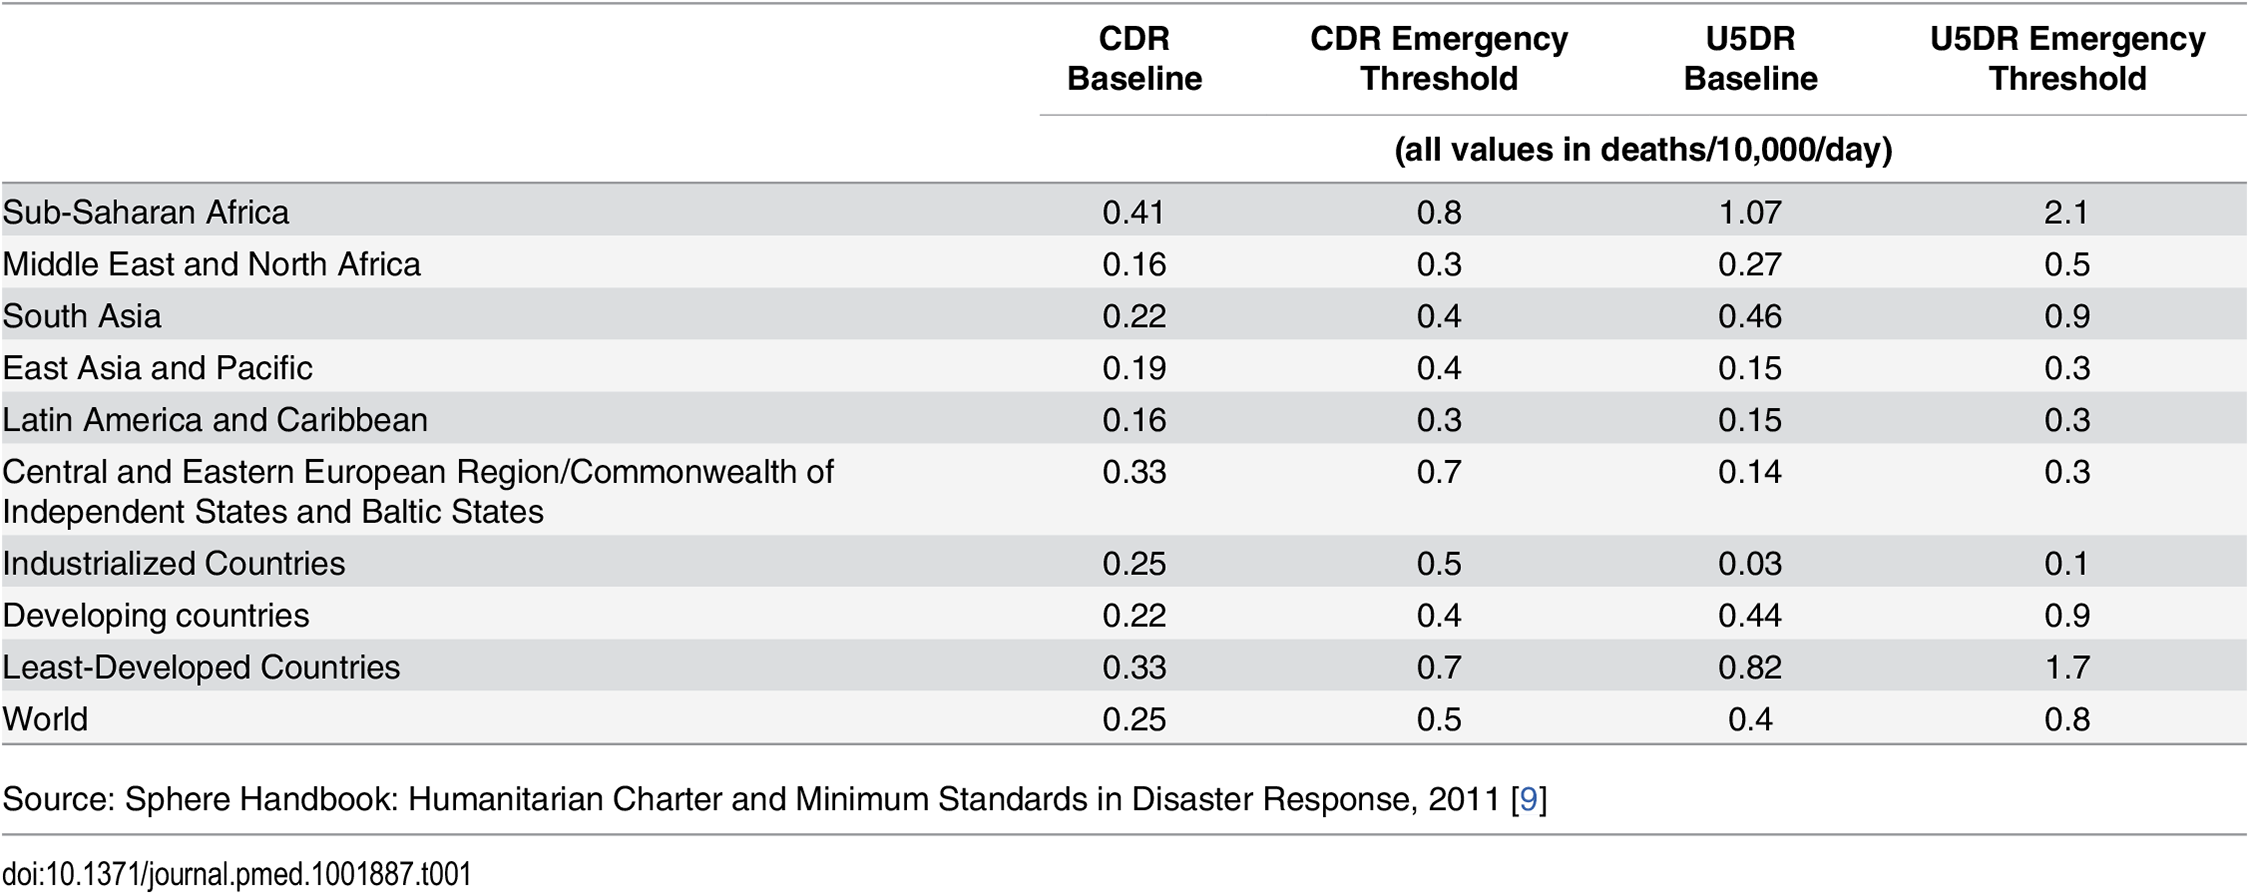 Baseline mortality levels and emergency thresholds by region.